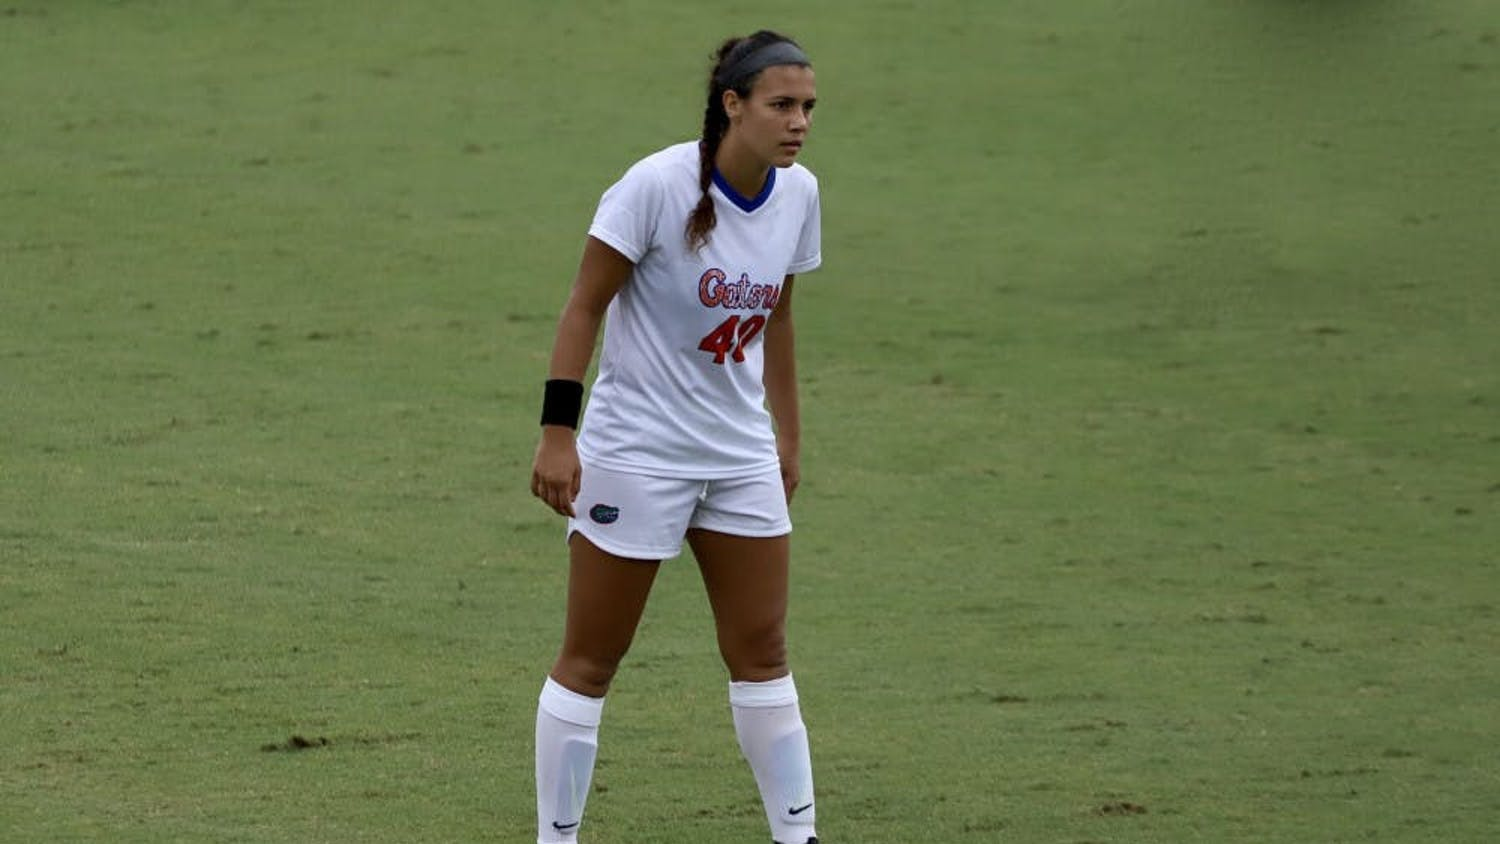 Alivia Gonzalez, pictured during her sophomore year, led the Gators with three shots in their conference opener against Vanderbilt Friday.